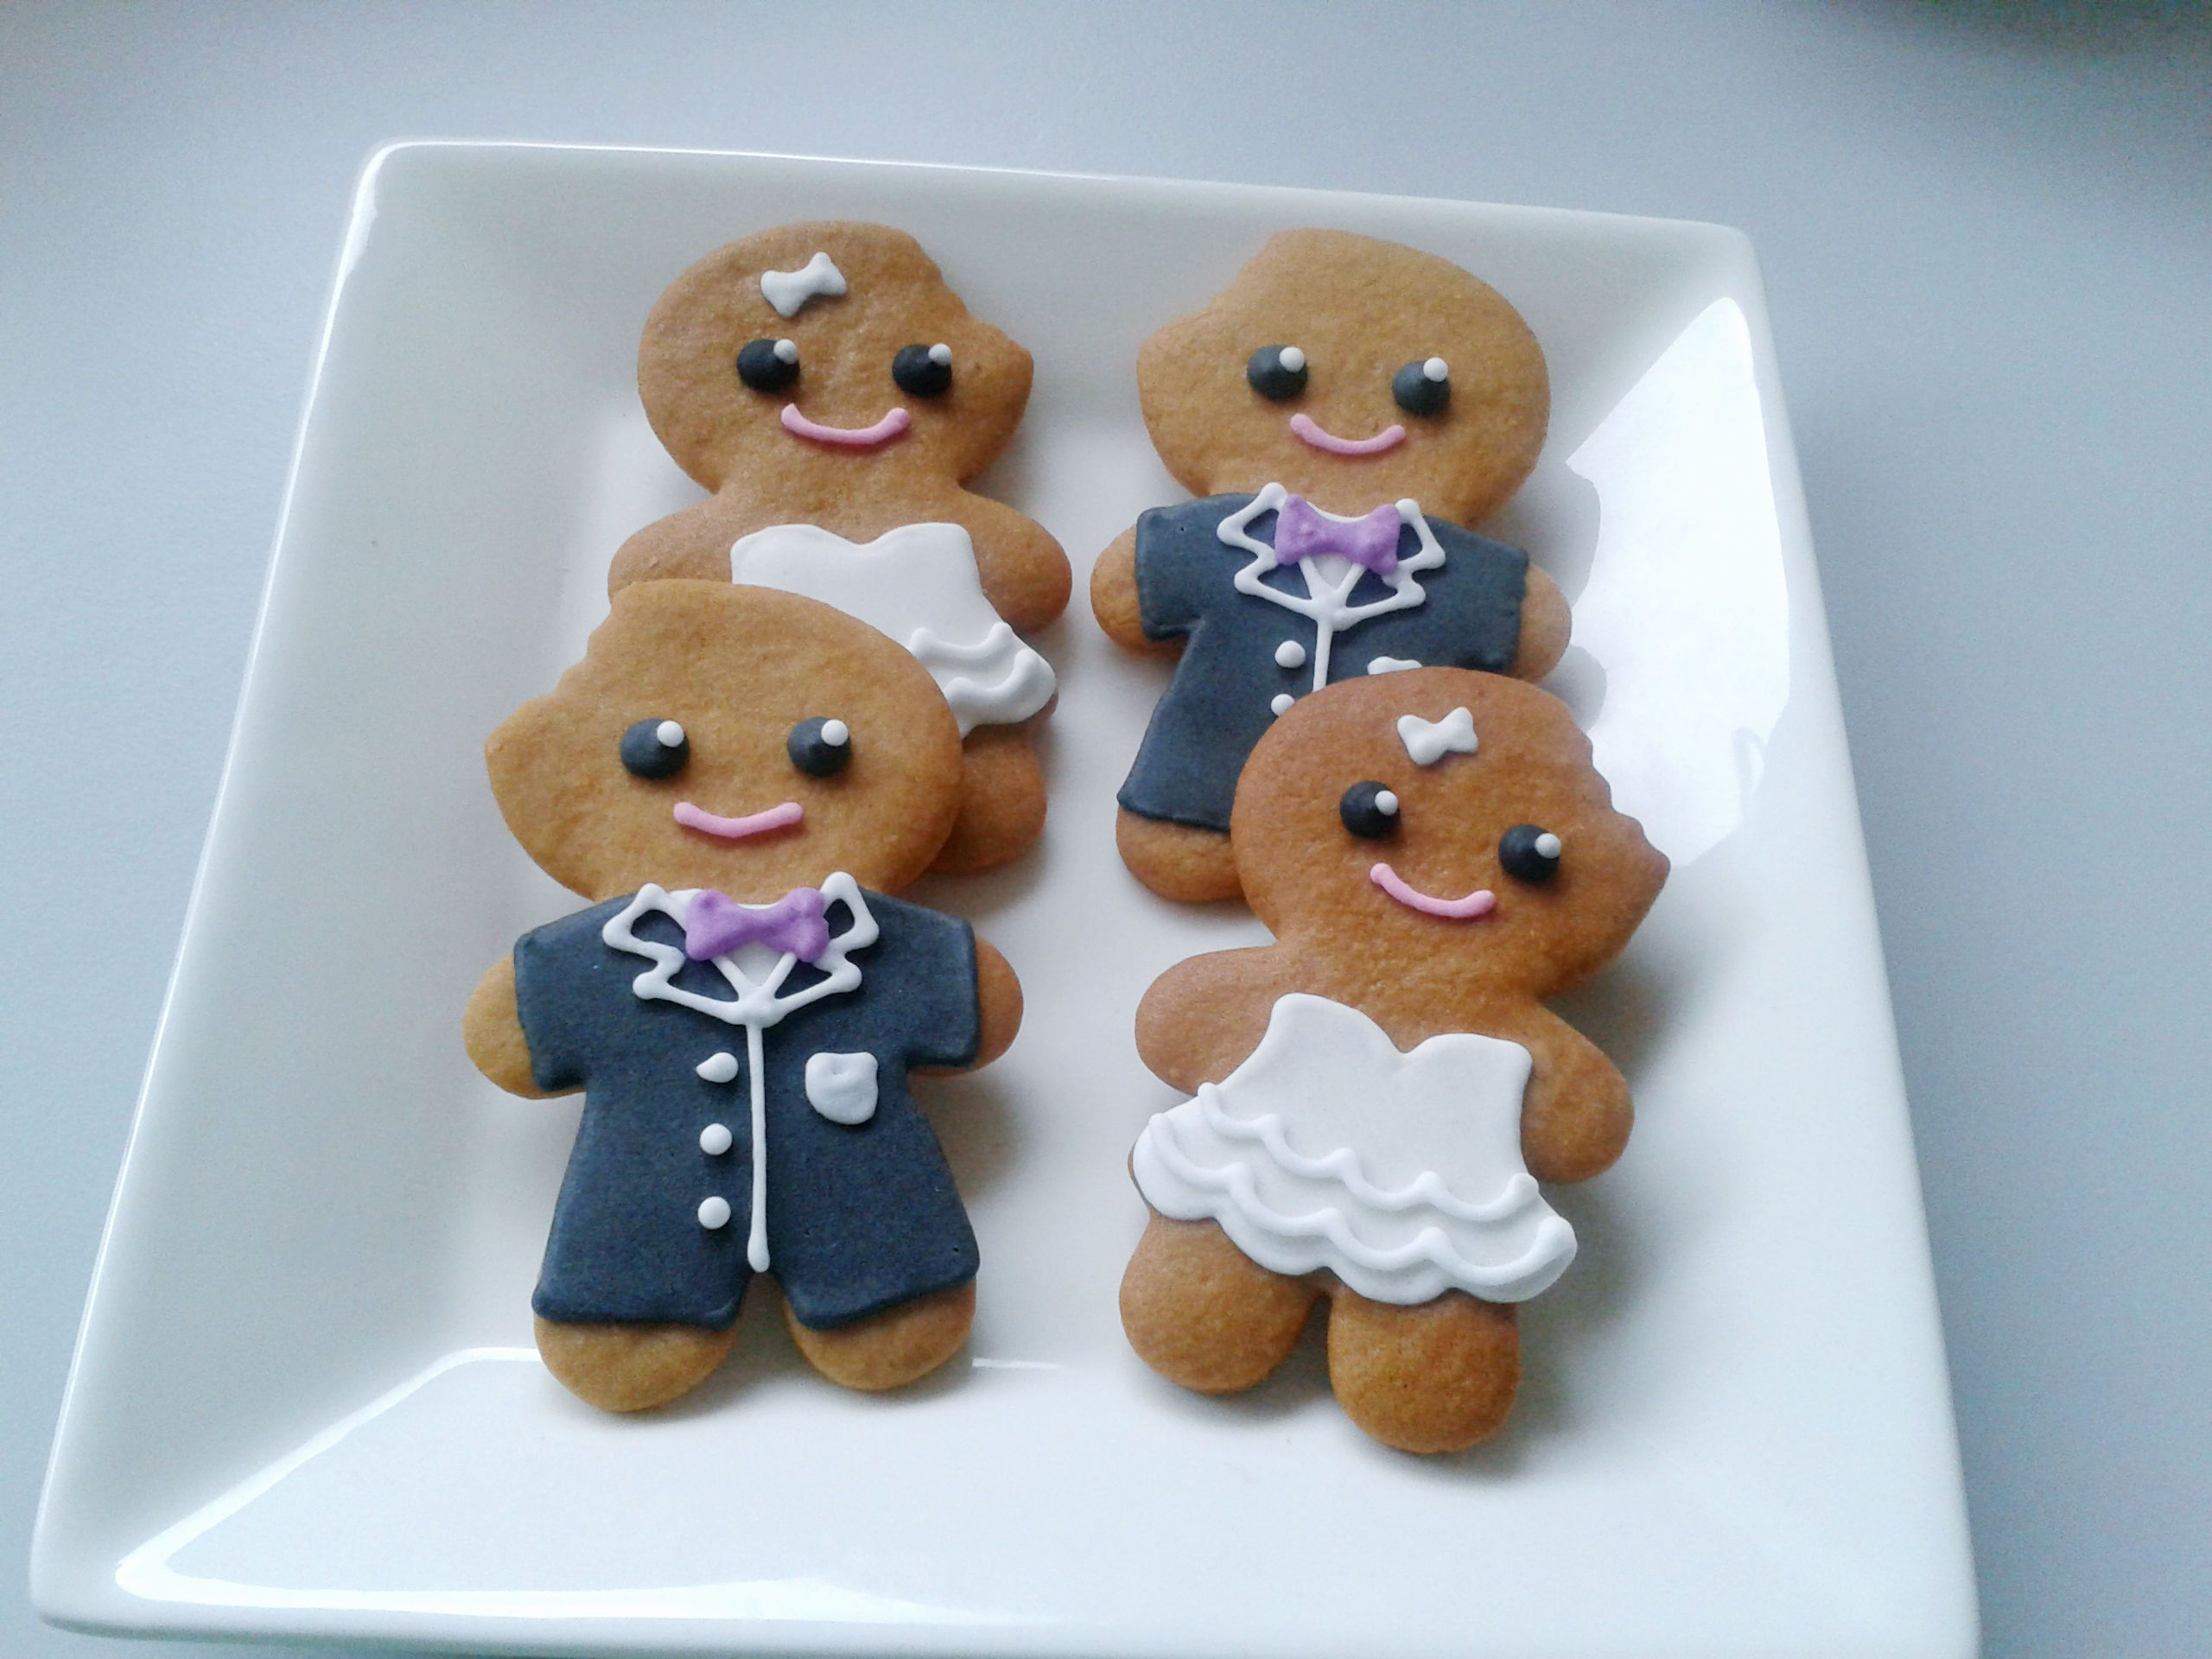 Gingerbread Corner - Gorgeous Wedding Favours #madeinmelbourne #madewithlove #gingerbread #weddingfavours #melbourne